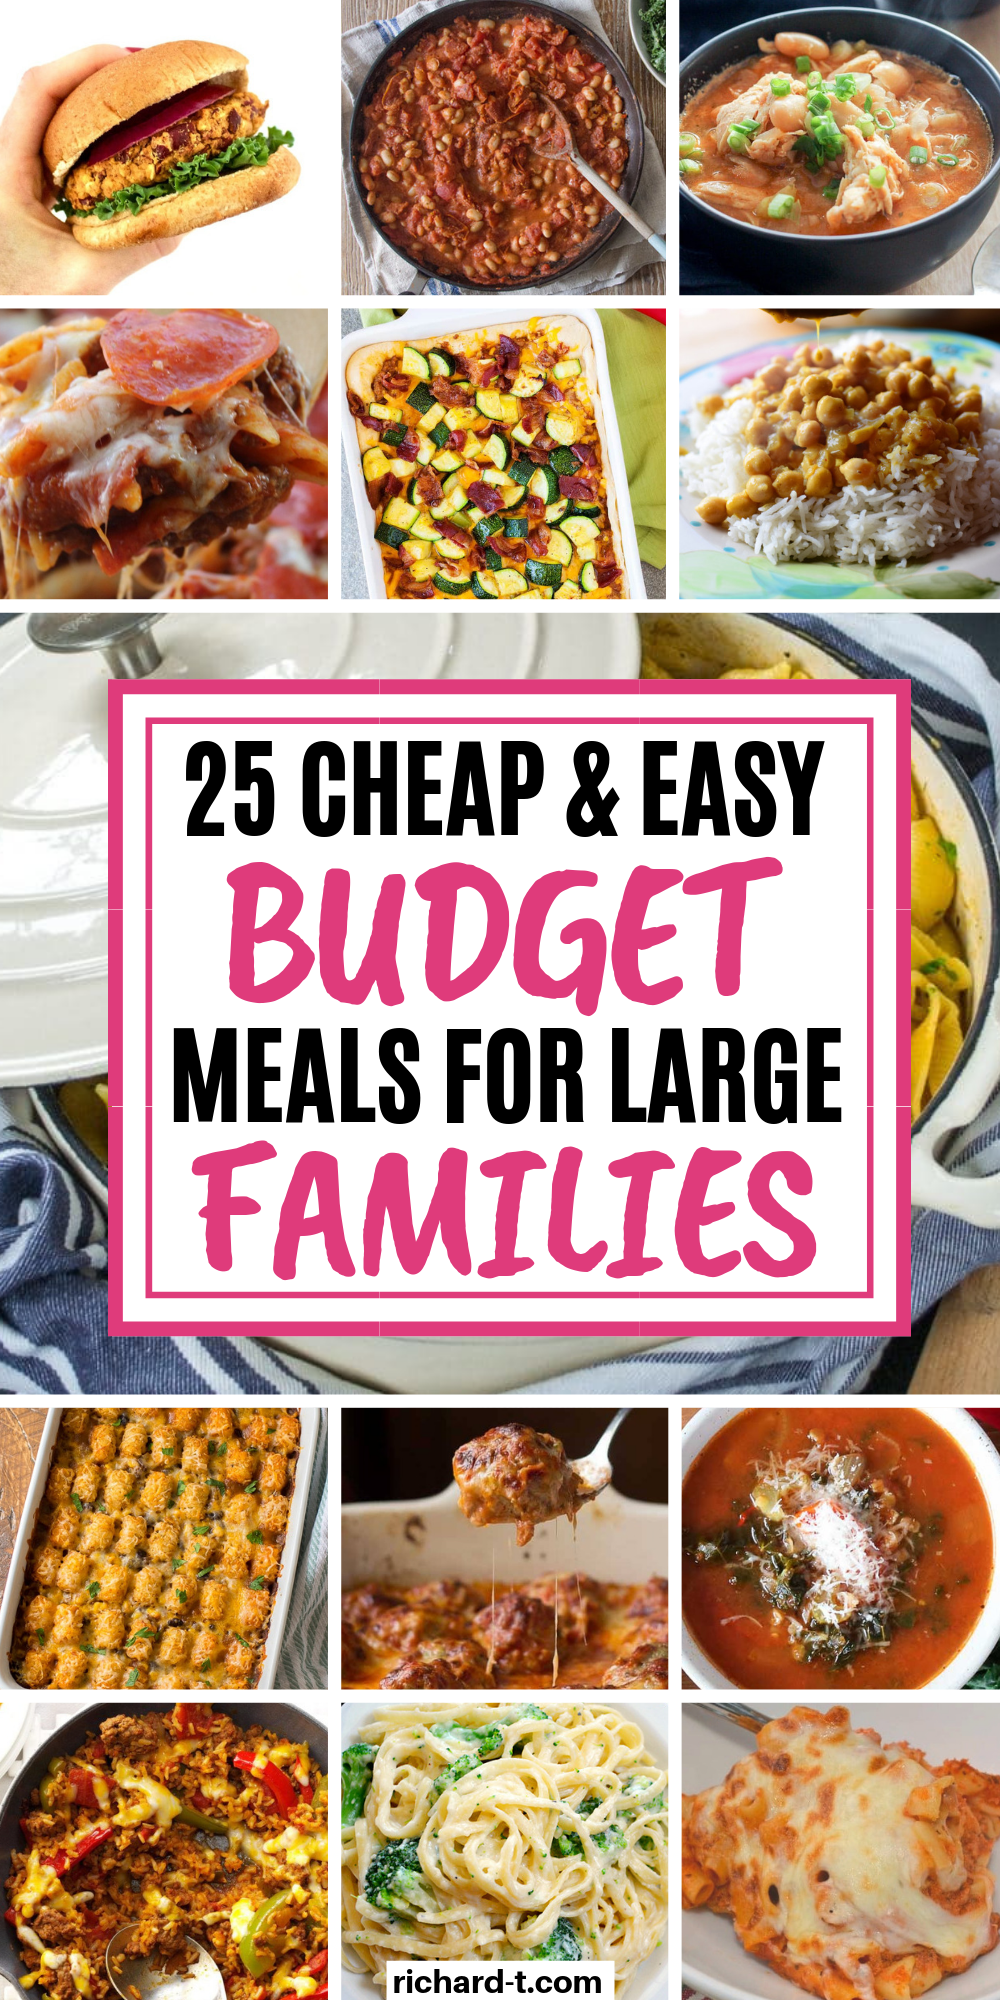 25 Budget Meals For Large Families That Are Cheap & Easy